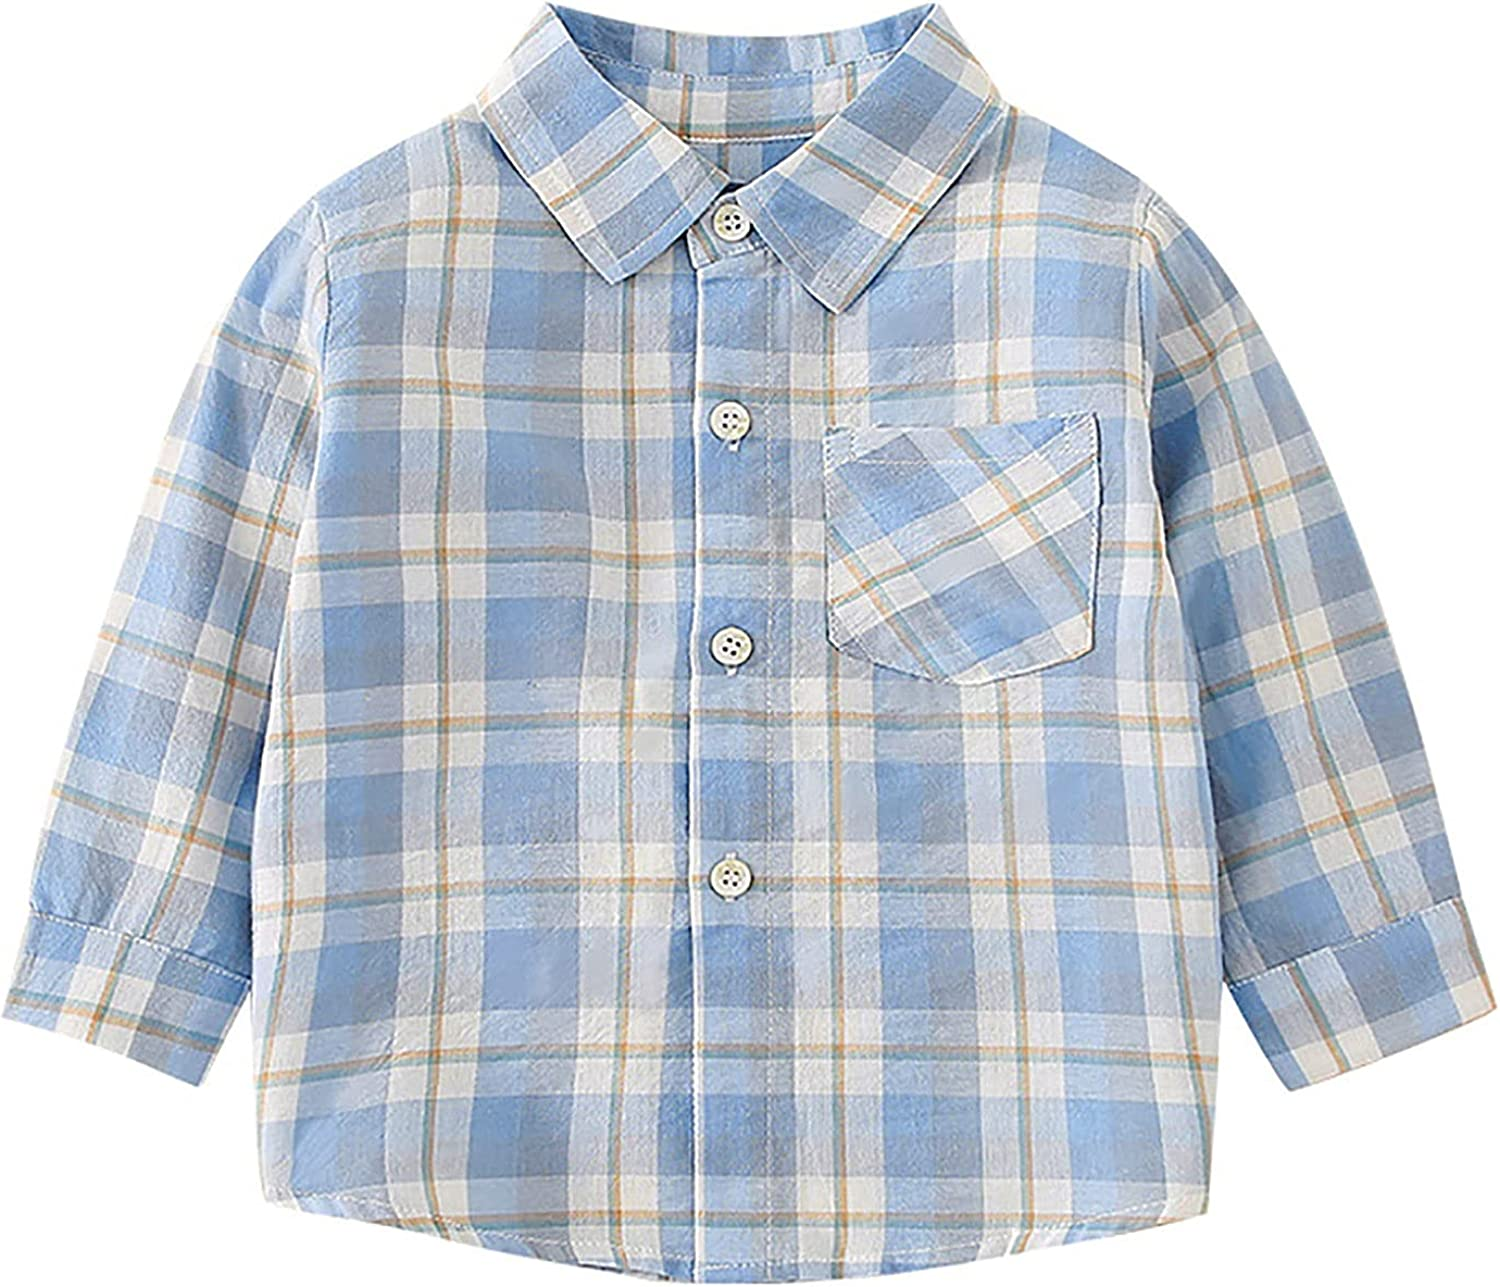 ACSUSS Infant Baby Boys Long Sleeve Button Up Shirt Toddler Buffalo Plaid T-Shirt with Pocket Fall Winter Clothes